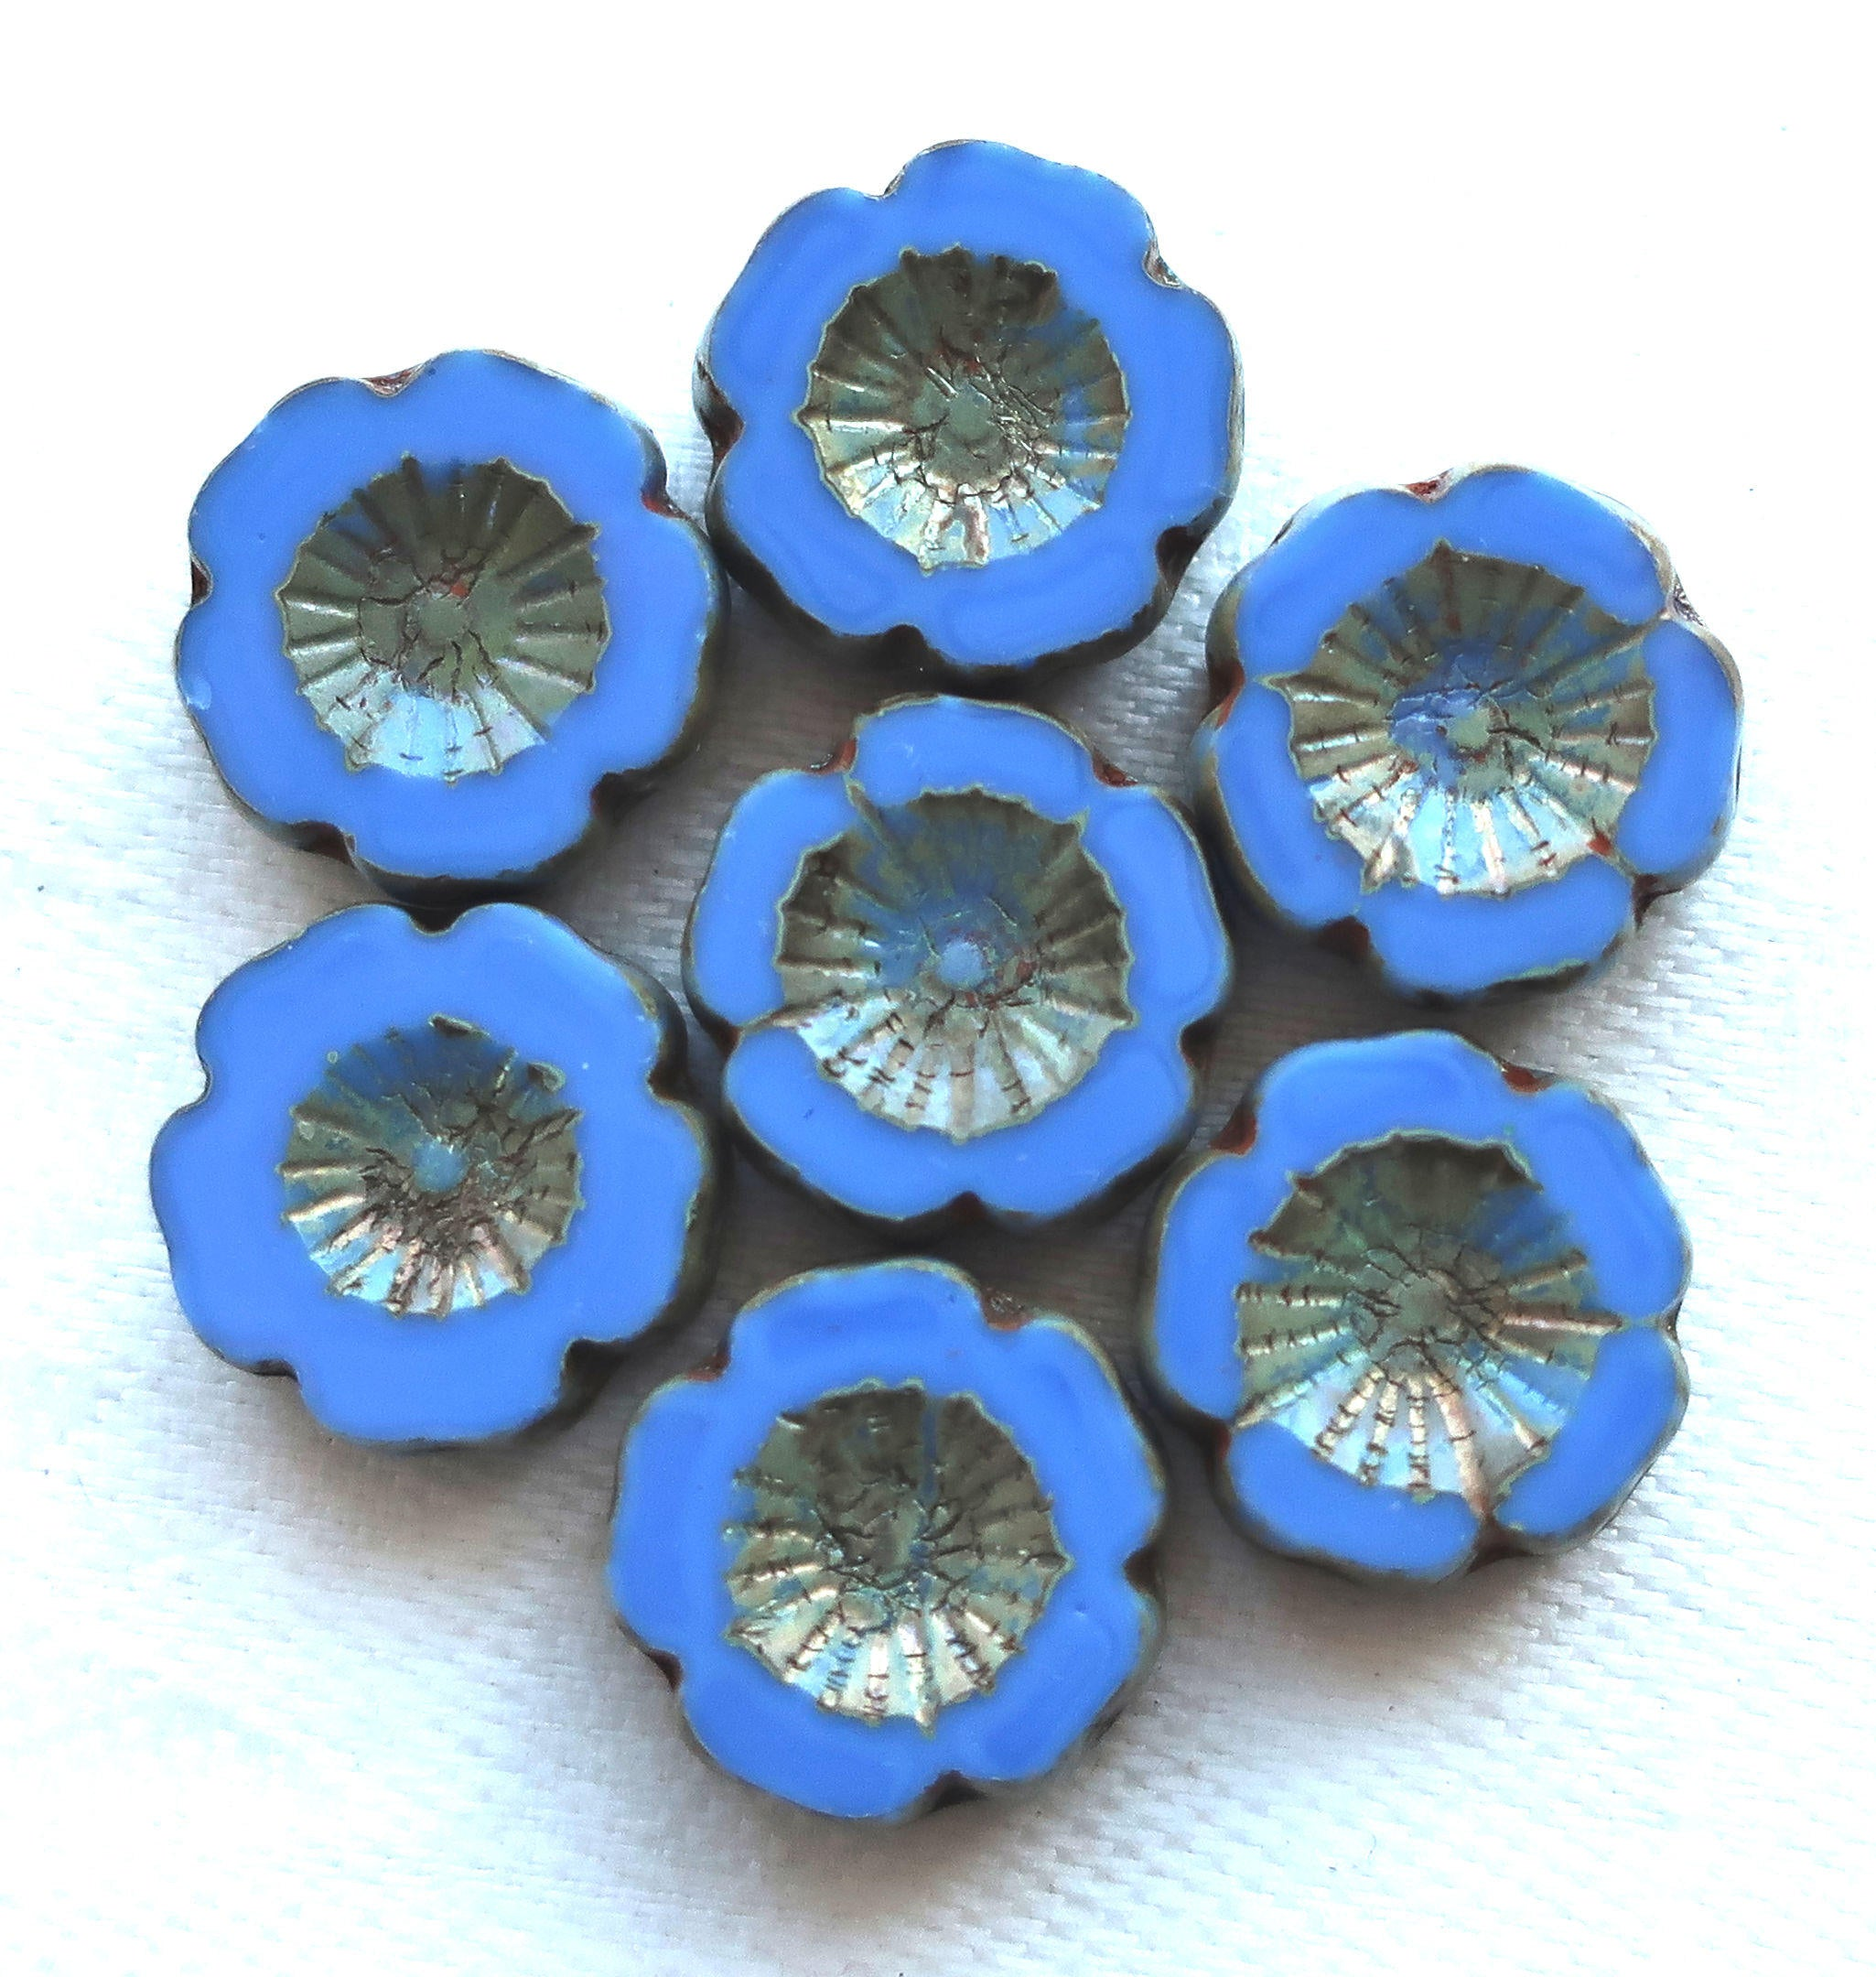 Six czech glass flower beads 14mm table cut carved opaque ocean six czech glass flower beads 14mm table cut carved opaque ocean blue hawaiian izmirmasajfo